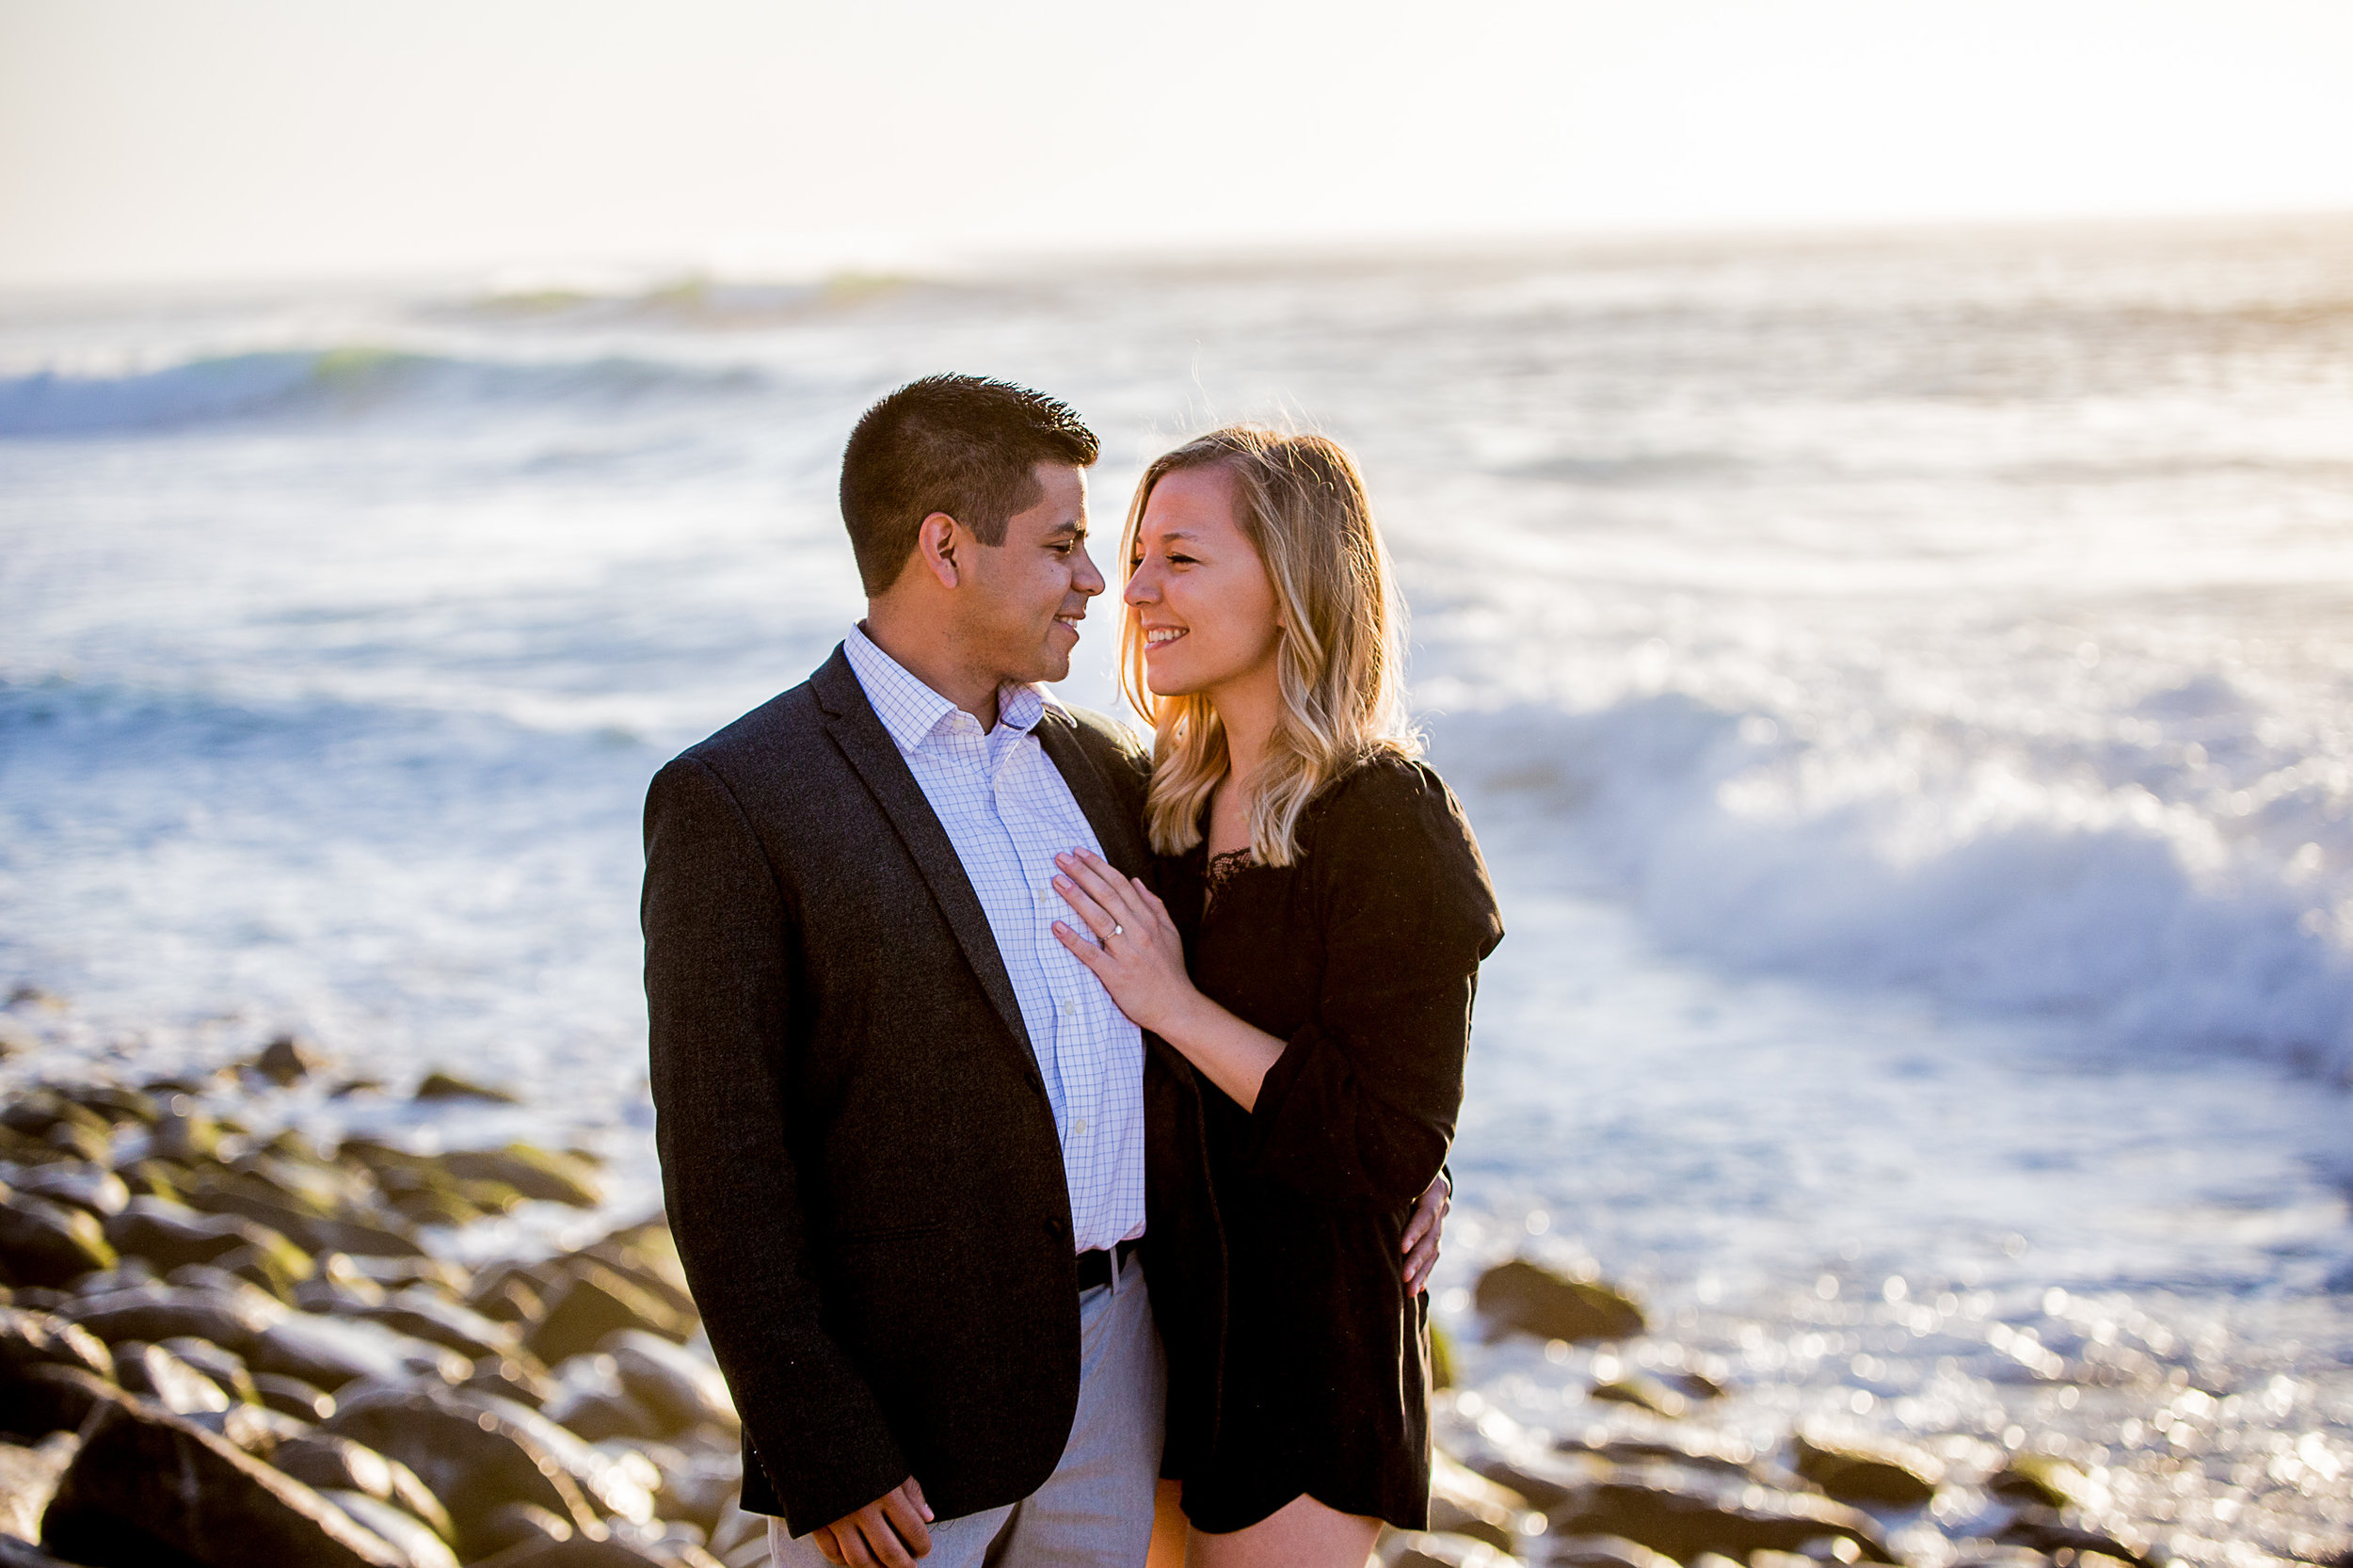 La-jolla-cove-proposal-chicago-natives-san-diego-sunset-golden-hour-love-story-engaged-alligator-head (91 of 158).jpg